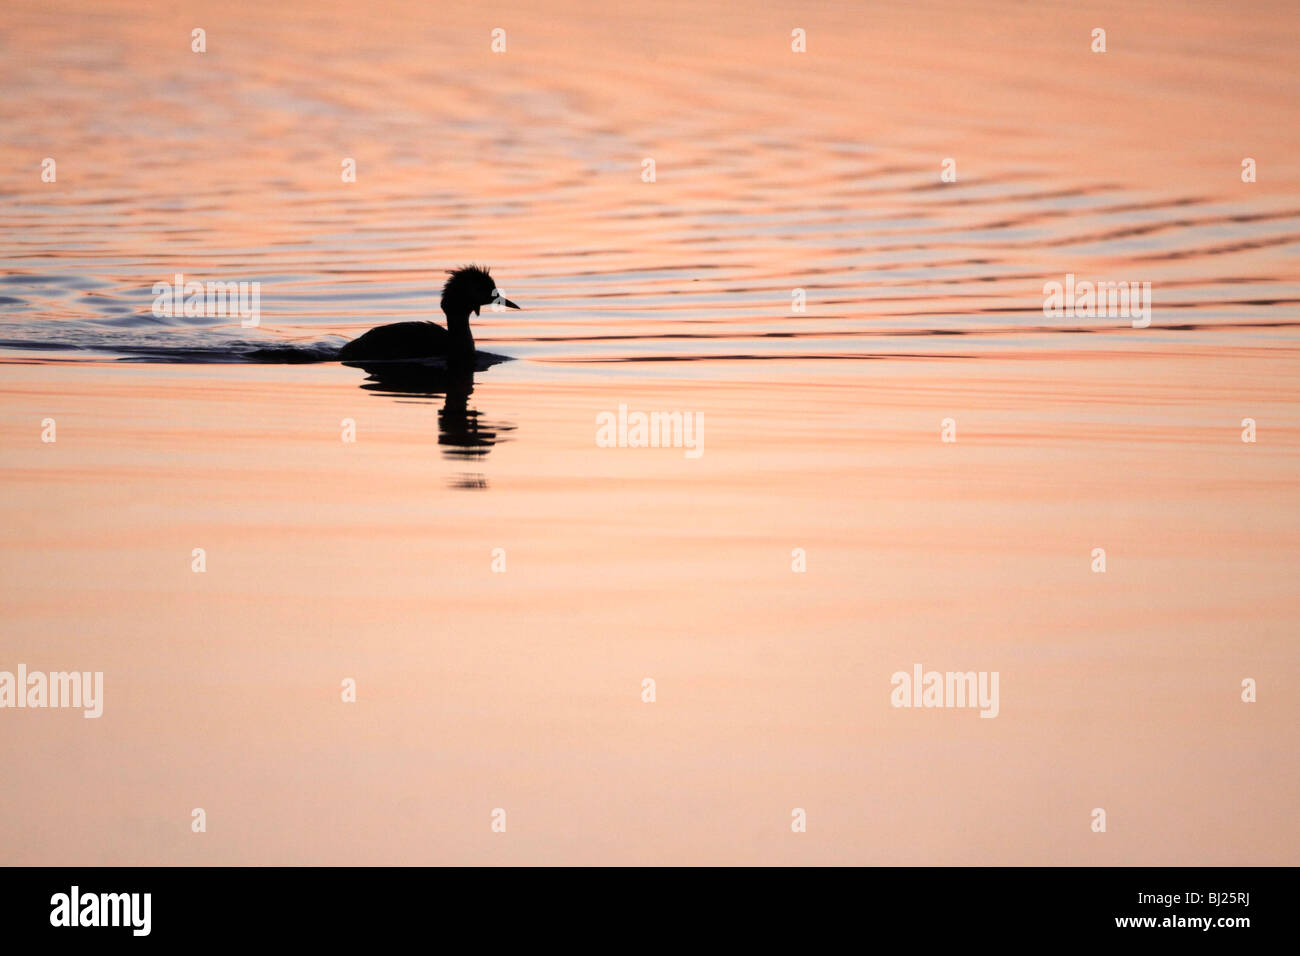 Great Crested Grebe (Podiceps cristatus), silhouette of bird on lake at twilight, Island of Texel, Holland - Stock Image